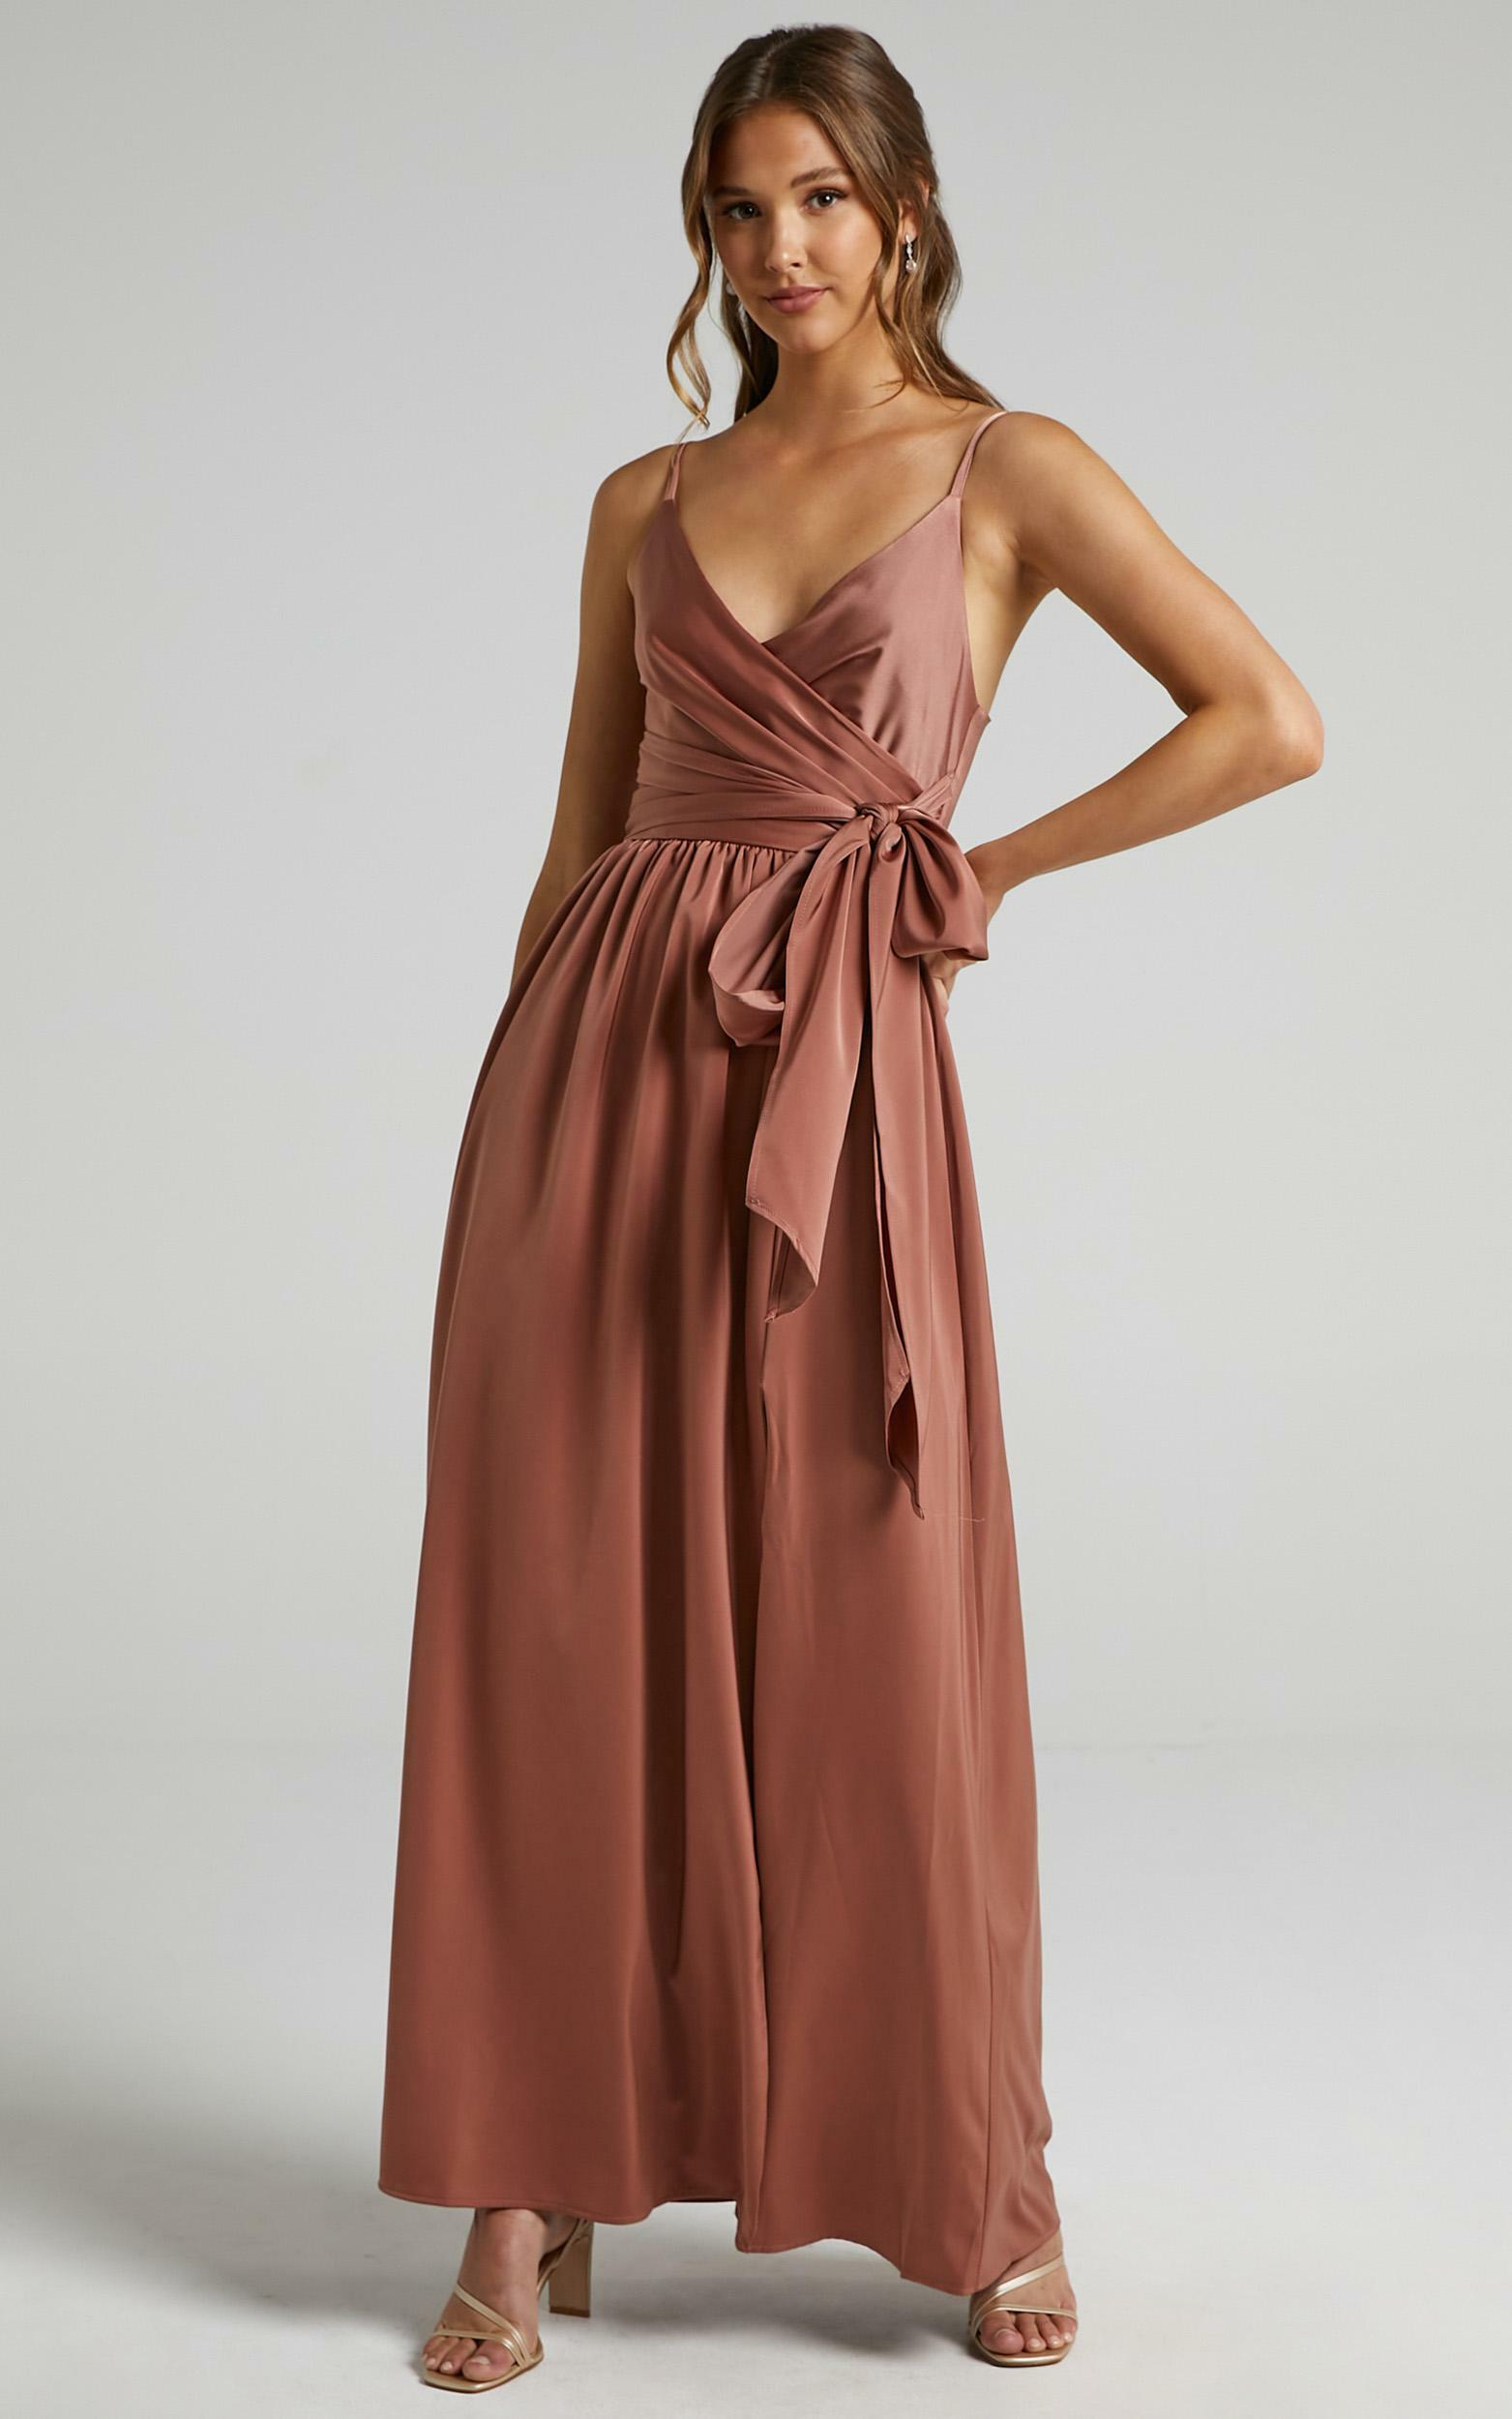 Revolve Around Me Dress in Dusty Rose - 16, PNK3, hi-res image number null